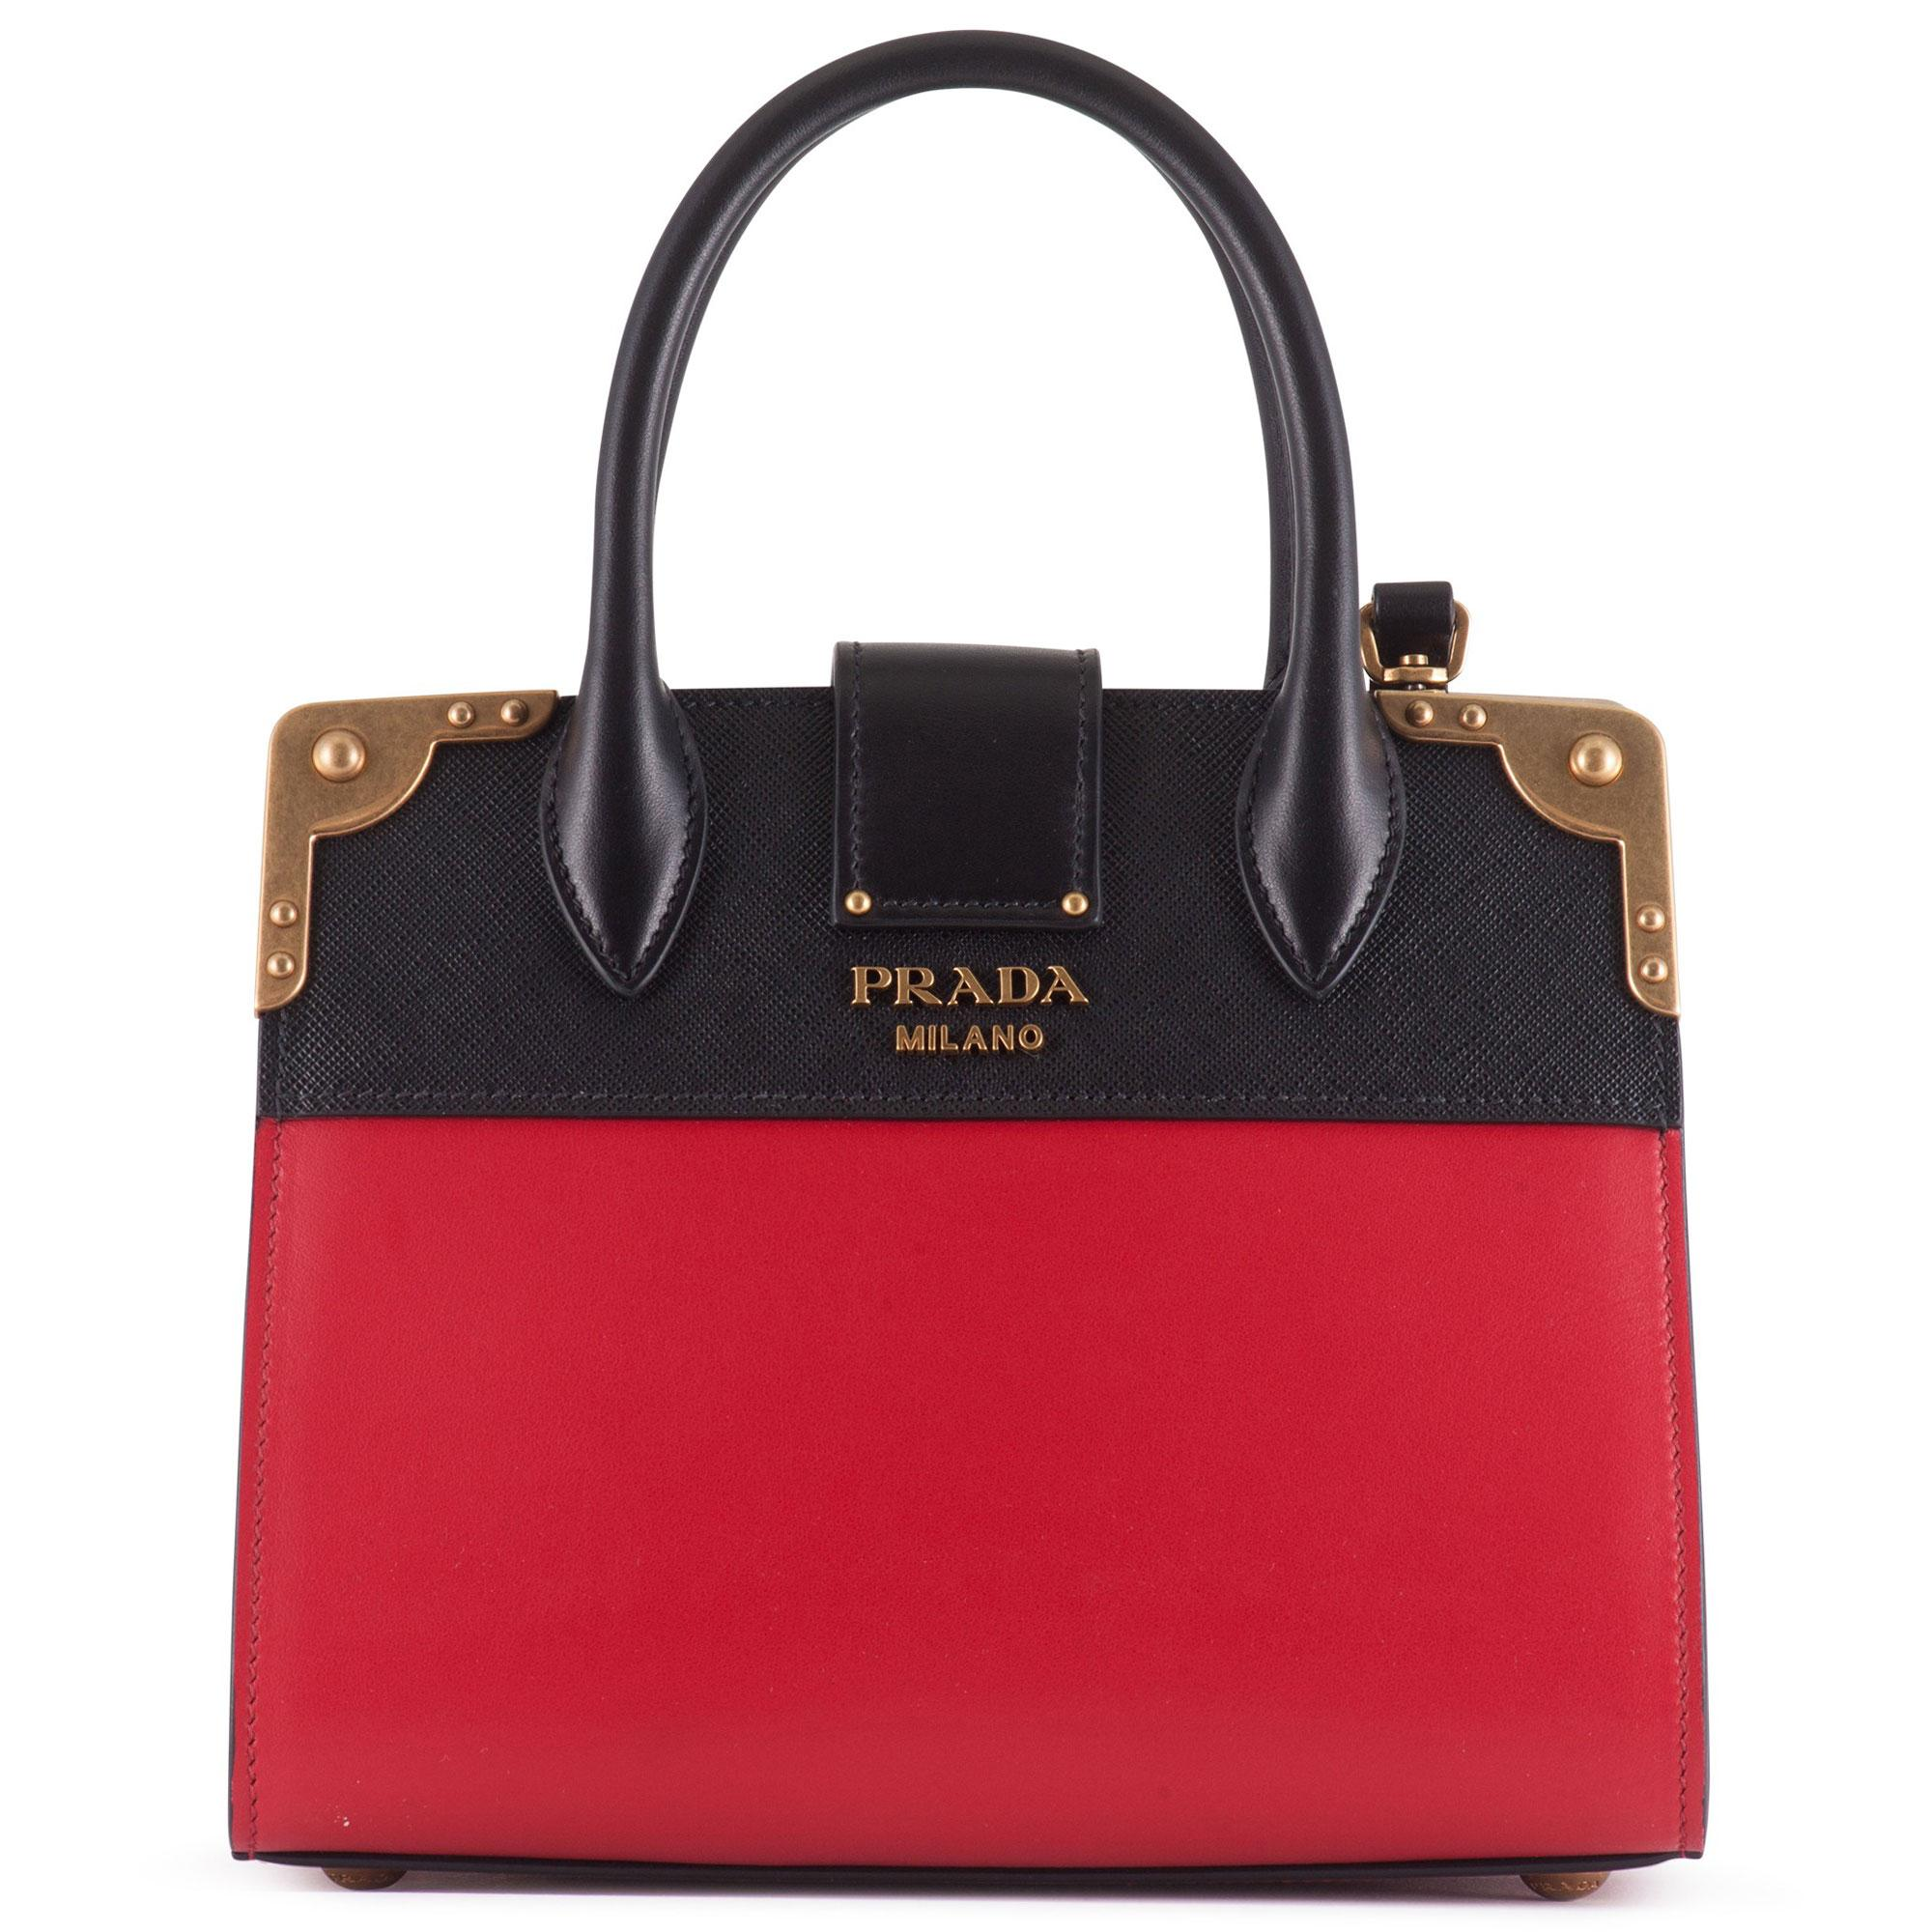 1a4227e24f2f Prada Saffiano Leather Bag Red | Stanford Center for Opportunity ...